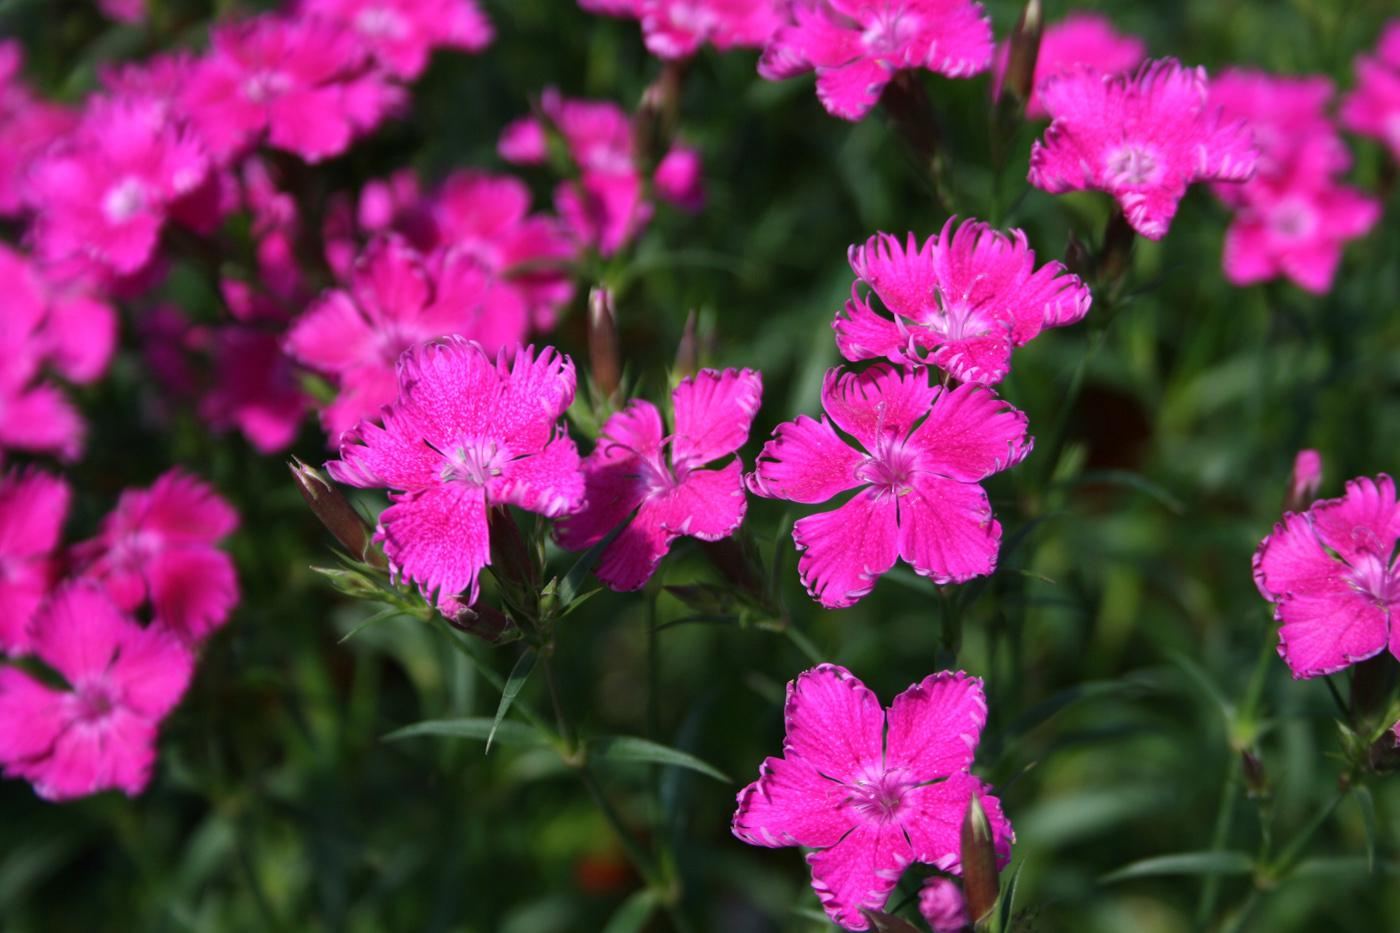 The flowers of Bouquet Purple dianthus are a vivid, dark pink with petals having tattered, upturned margins. The stems are up to 18 inches long, making these a great choice for cut flowers.  (Photos by Gary Bachman)